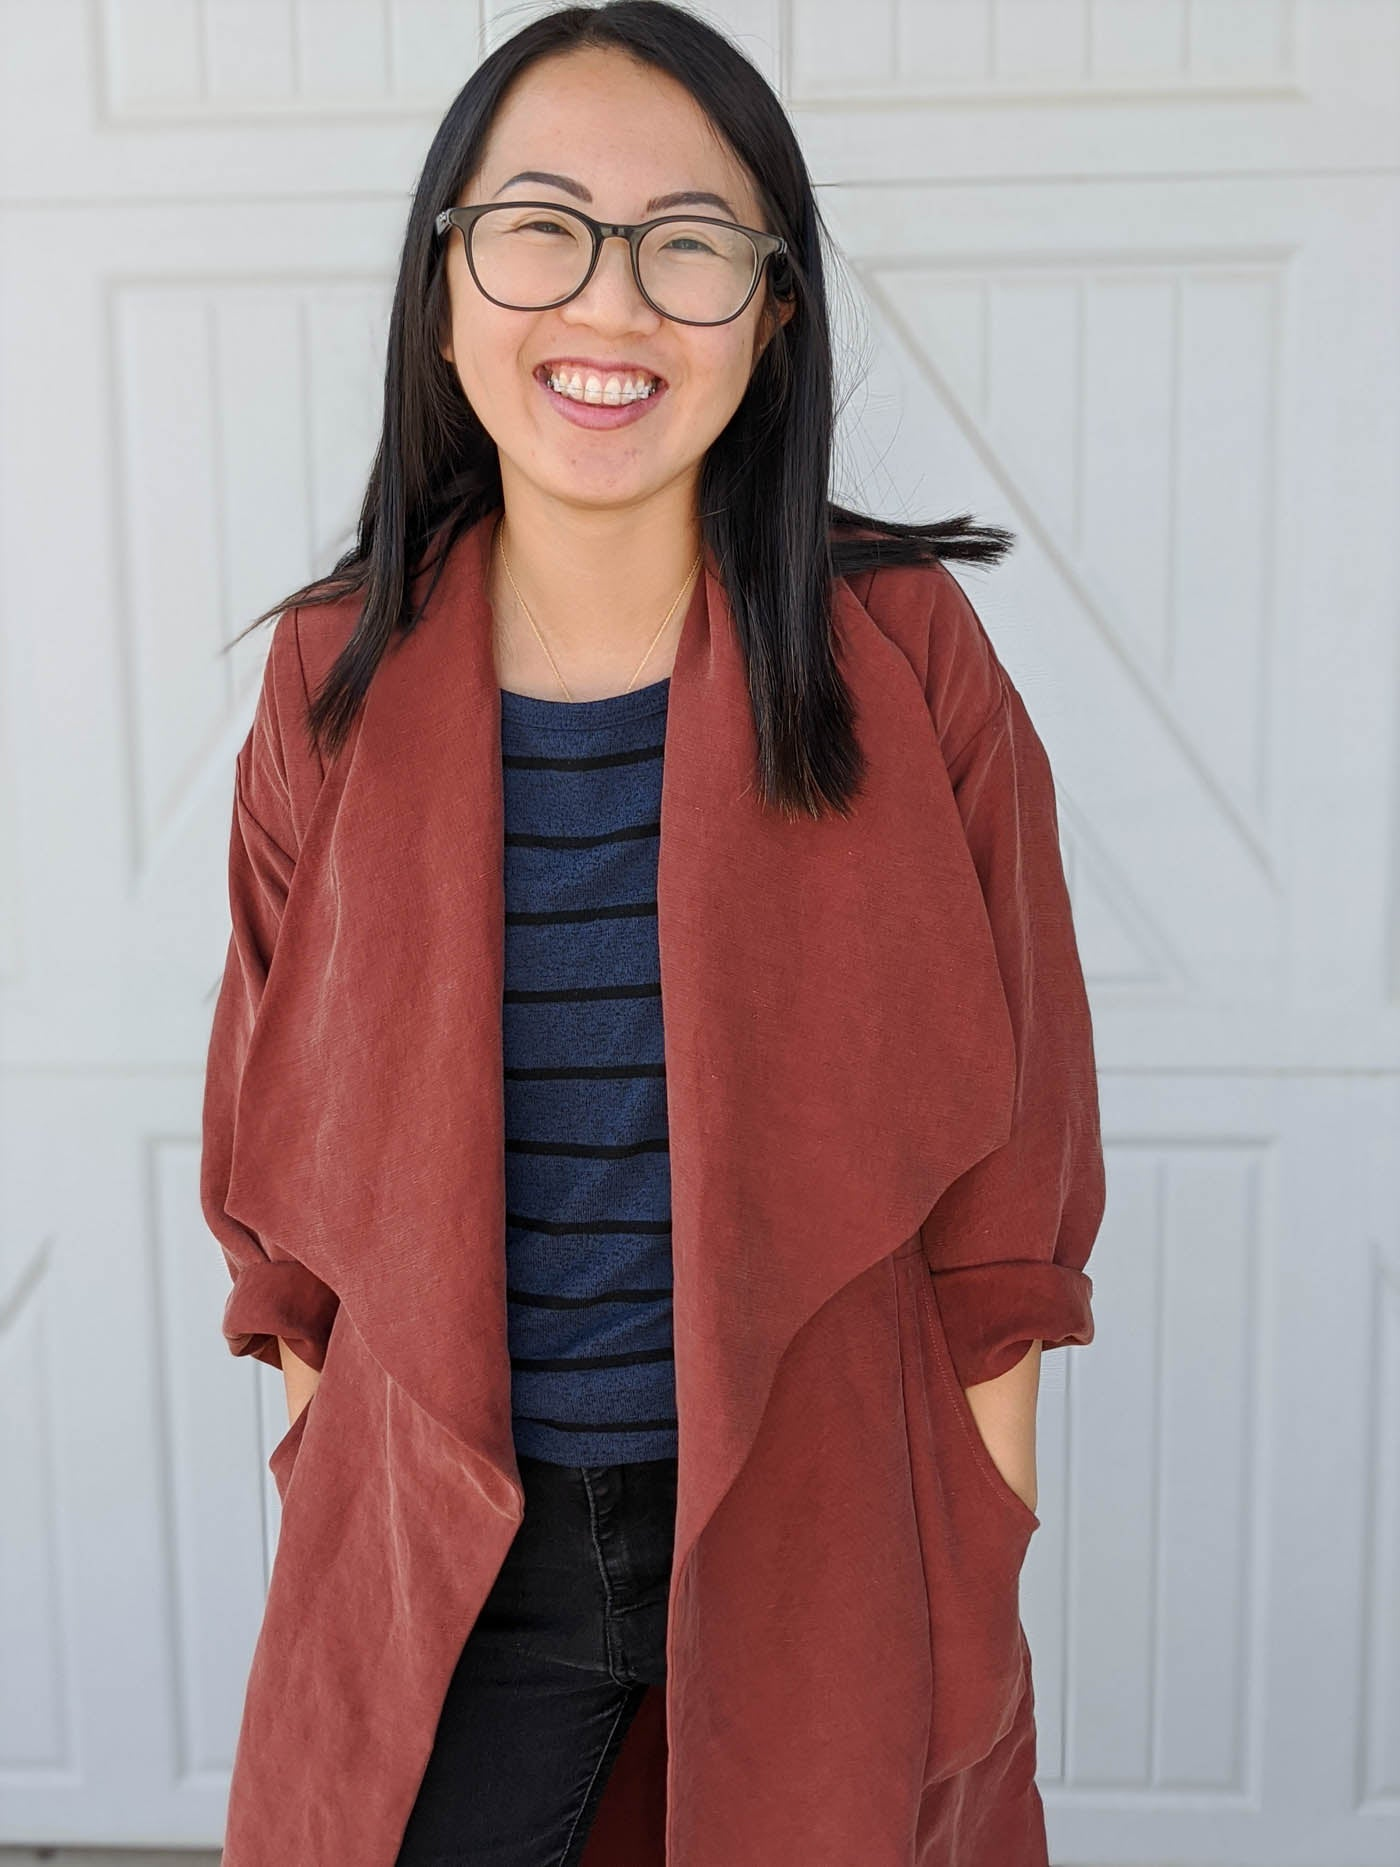 Up close photograph of a women wearing the Cambria Duster. Women is wearing glasses, facing the camera, hand in her pockets facing the camera and smiling. The background is a white garage door.